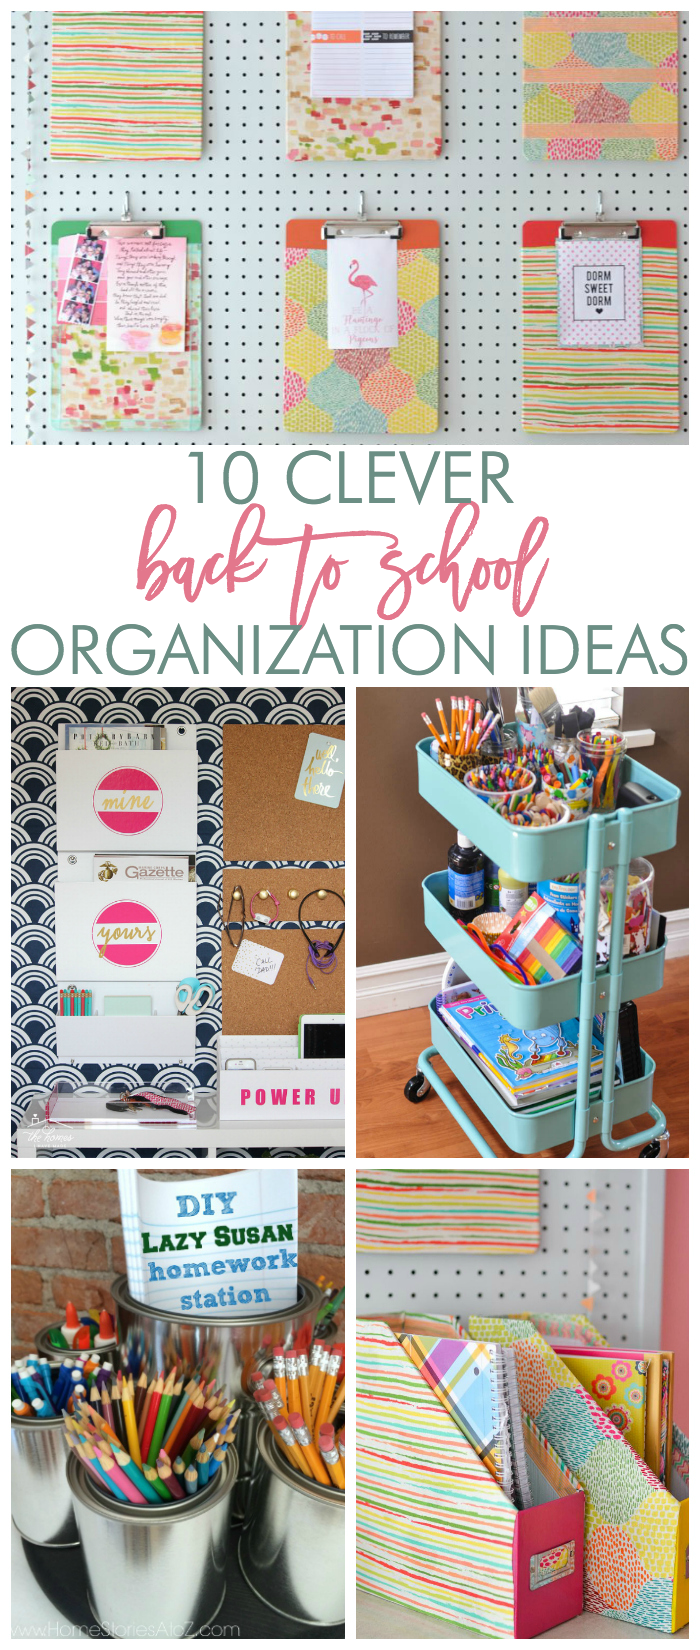 Fun Back to School Ideas - 10 Clever Organization Ideas